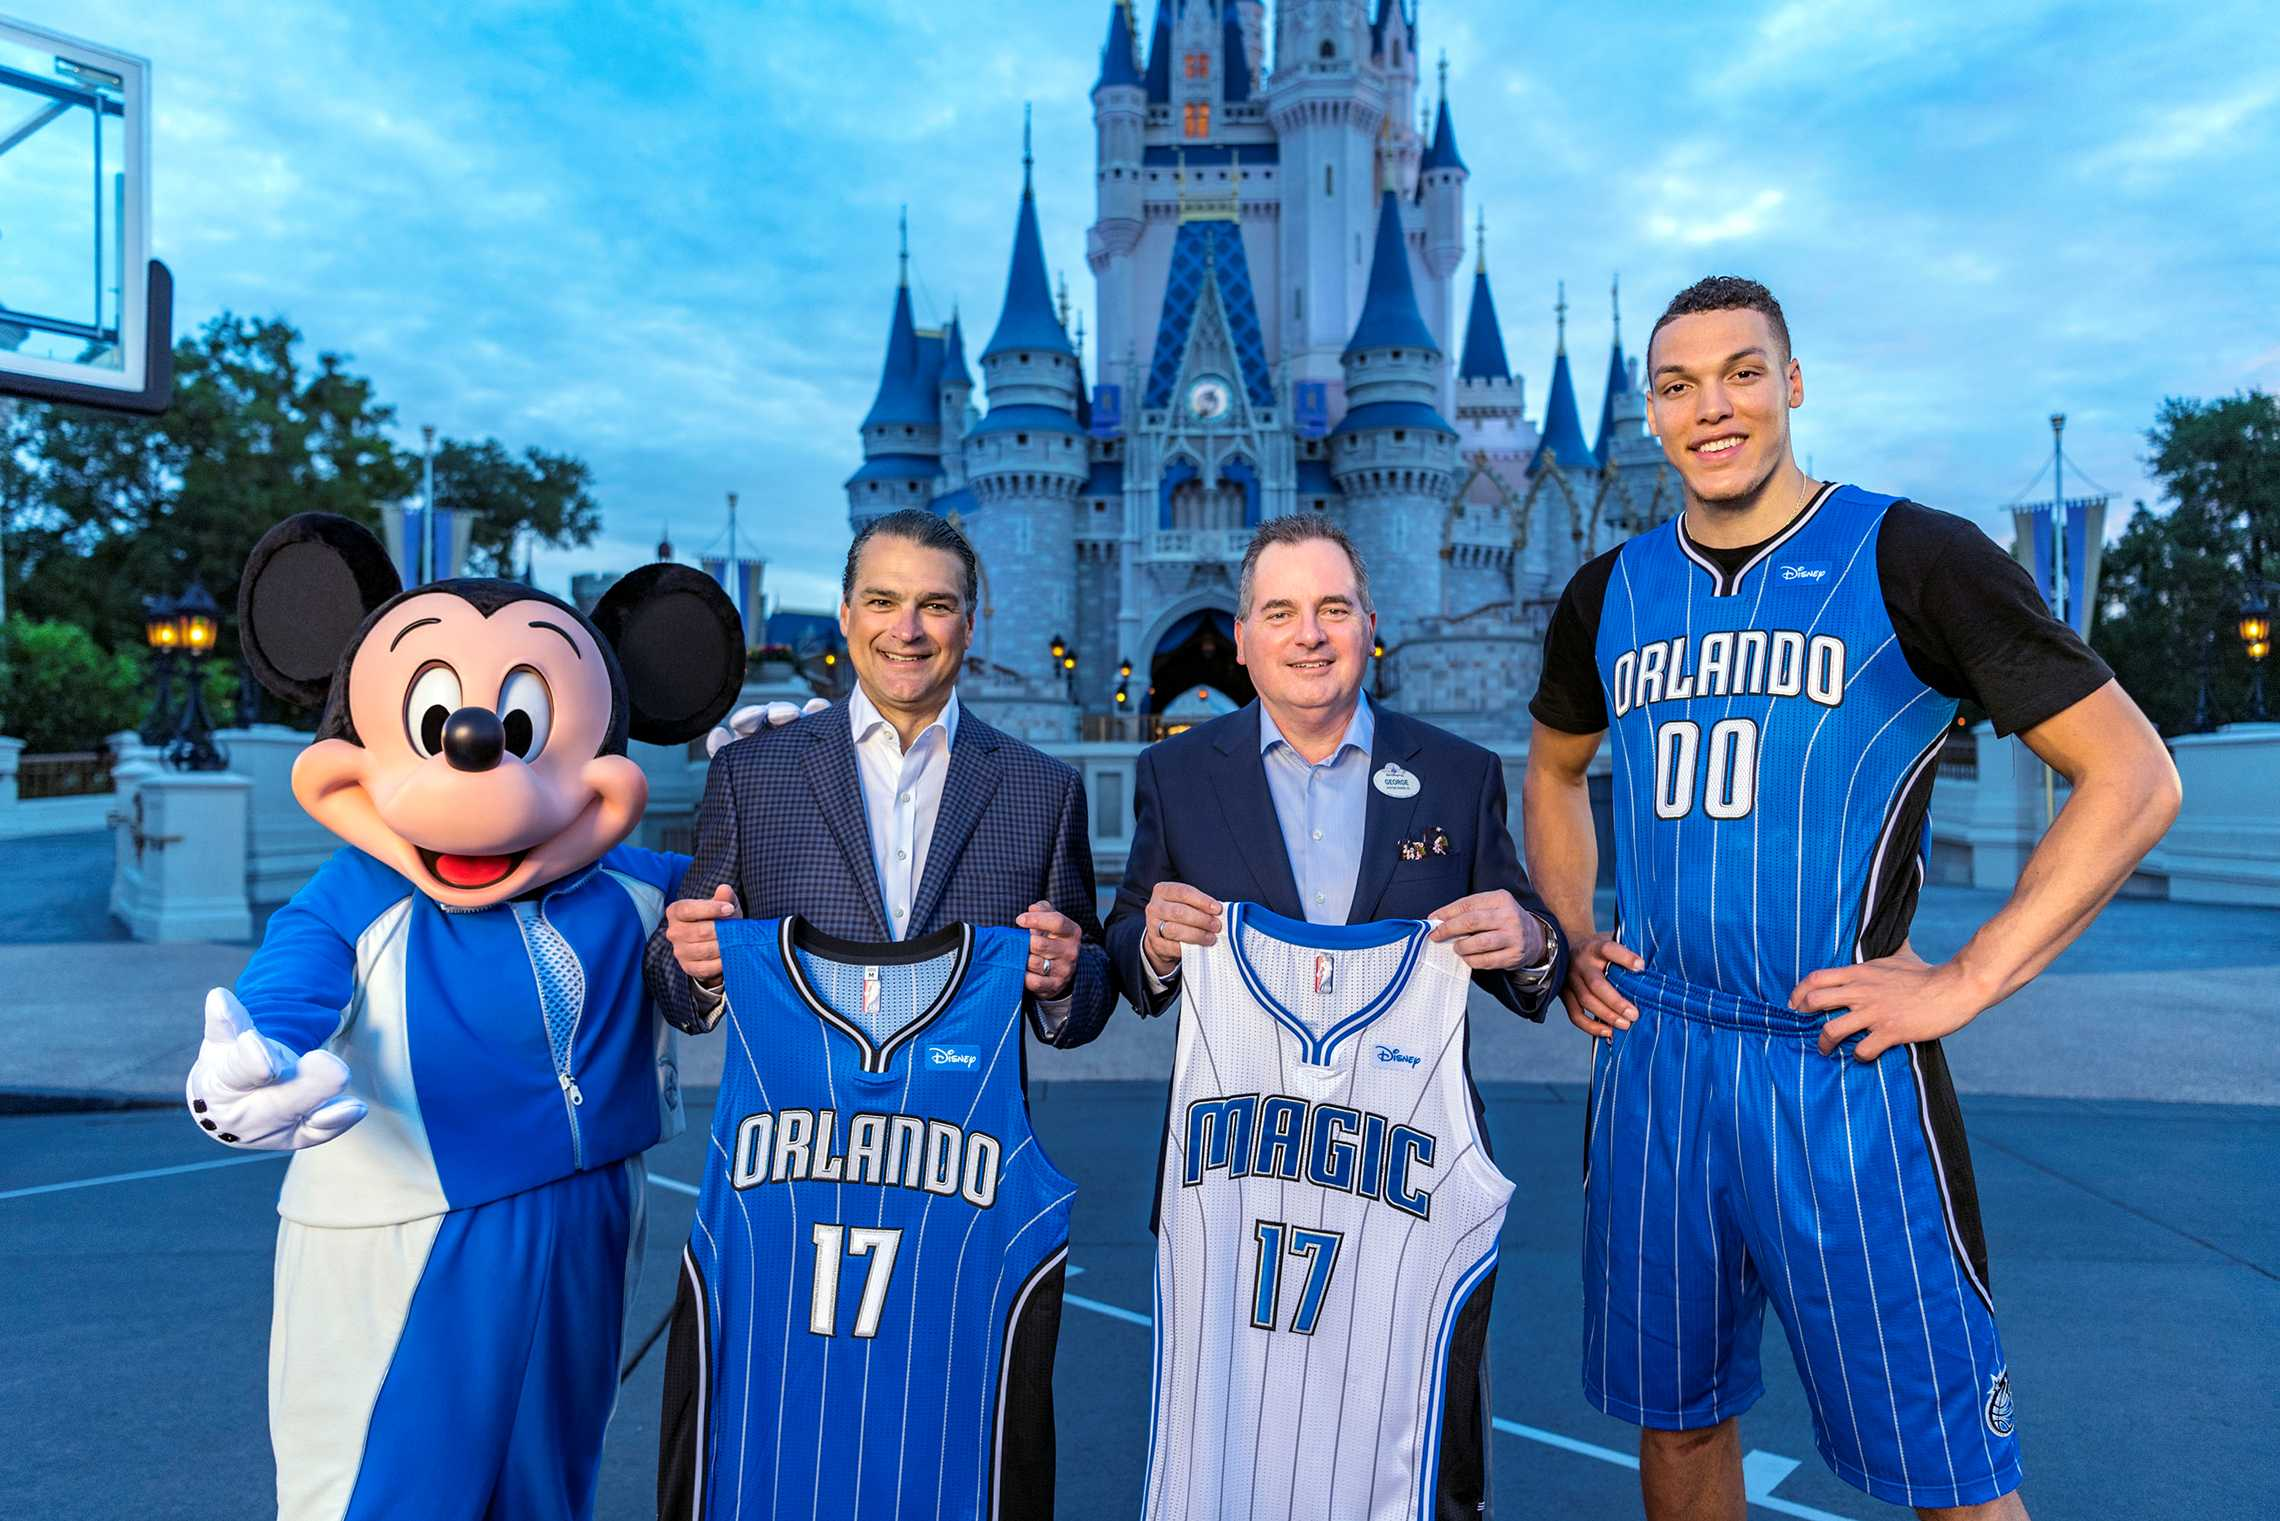 Orlando Magic CEO Alex Martins and Walt Disney World Resort President George A. Kalogridis pose with Orlando Magic star Aaron Gordon and Mickey Mouse as part of the announcement of Disney becoming the team's first jersey sponsor